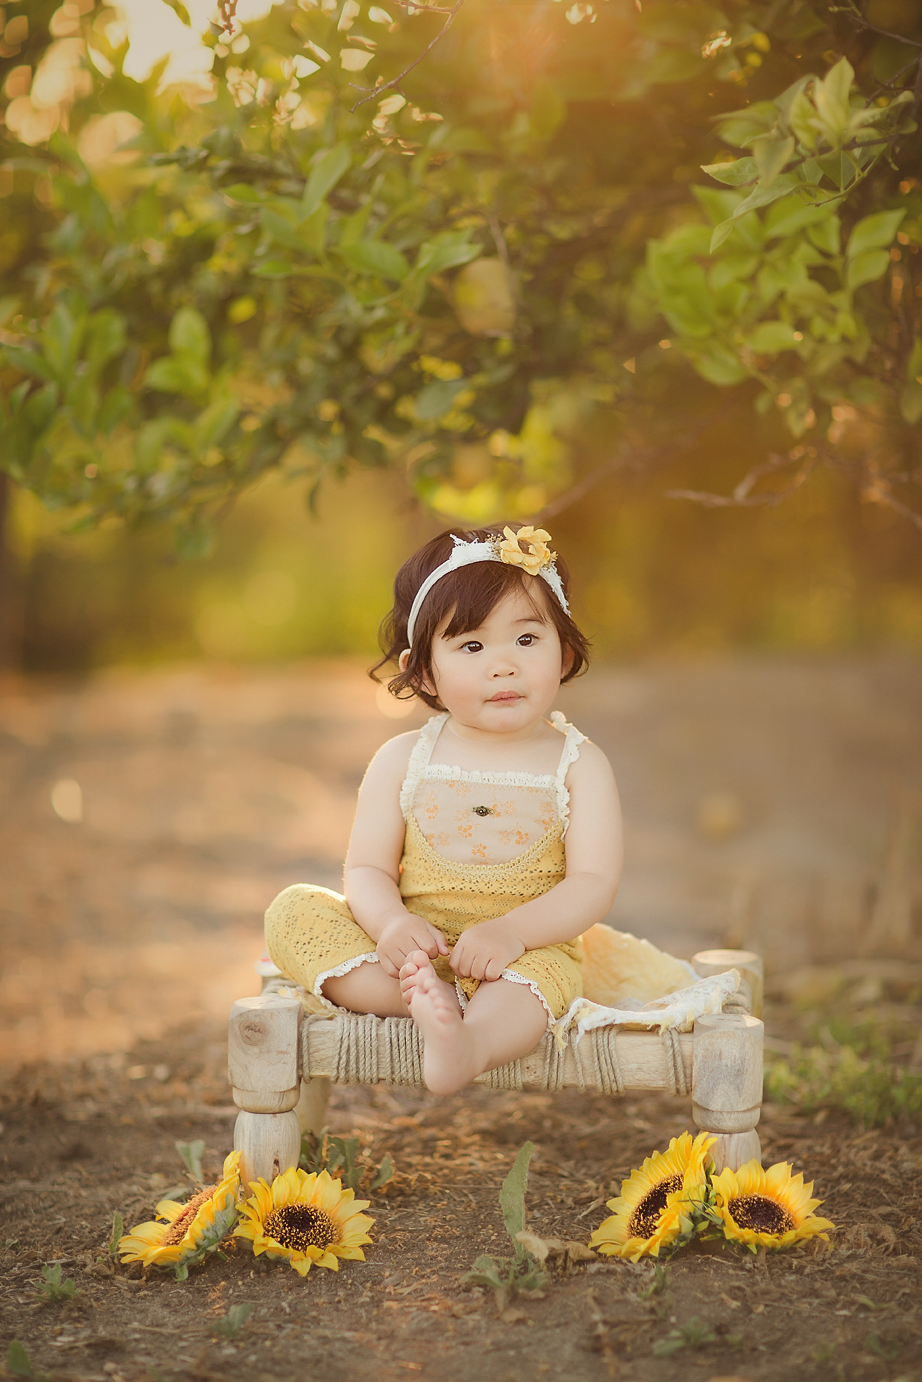 orange-county-baby-photographer-lemon-groves-yellow-sunflowers-sunset.jpg